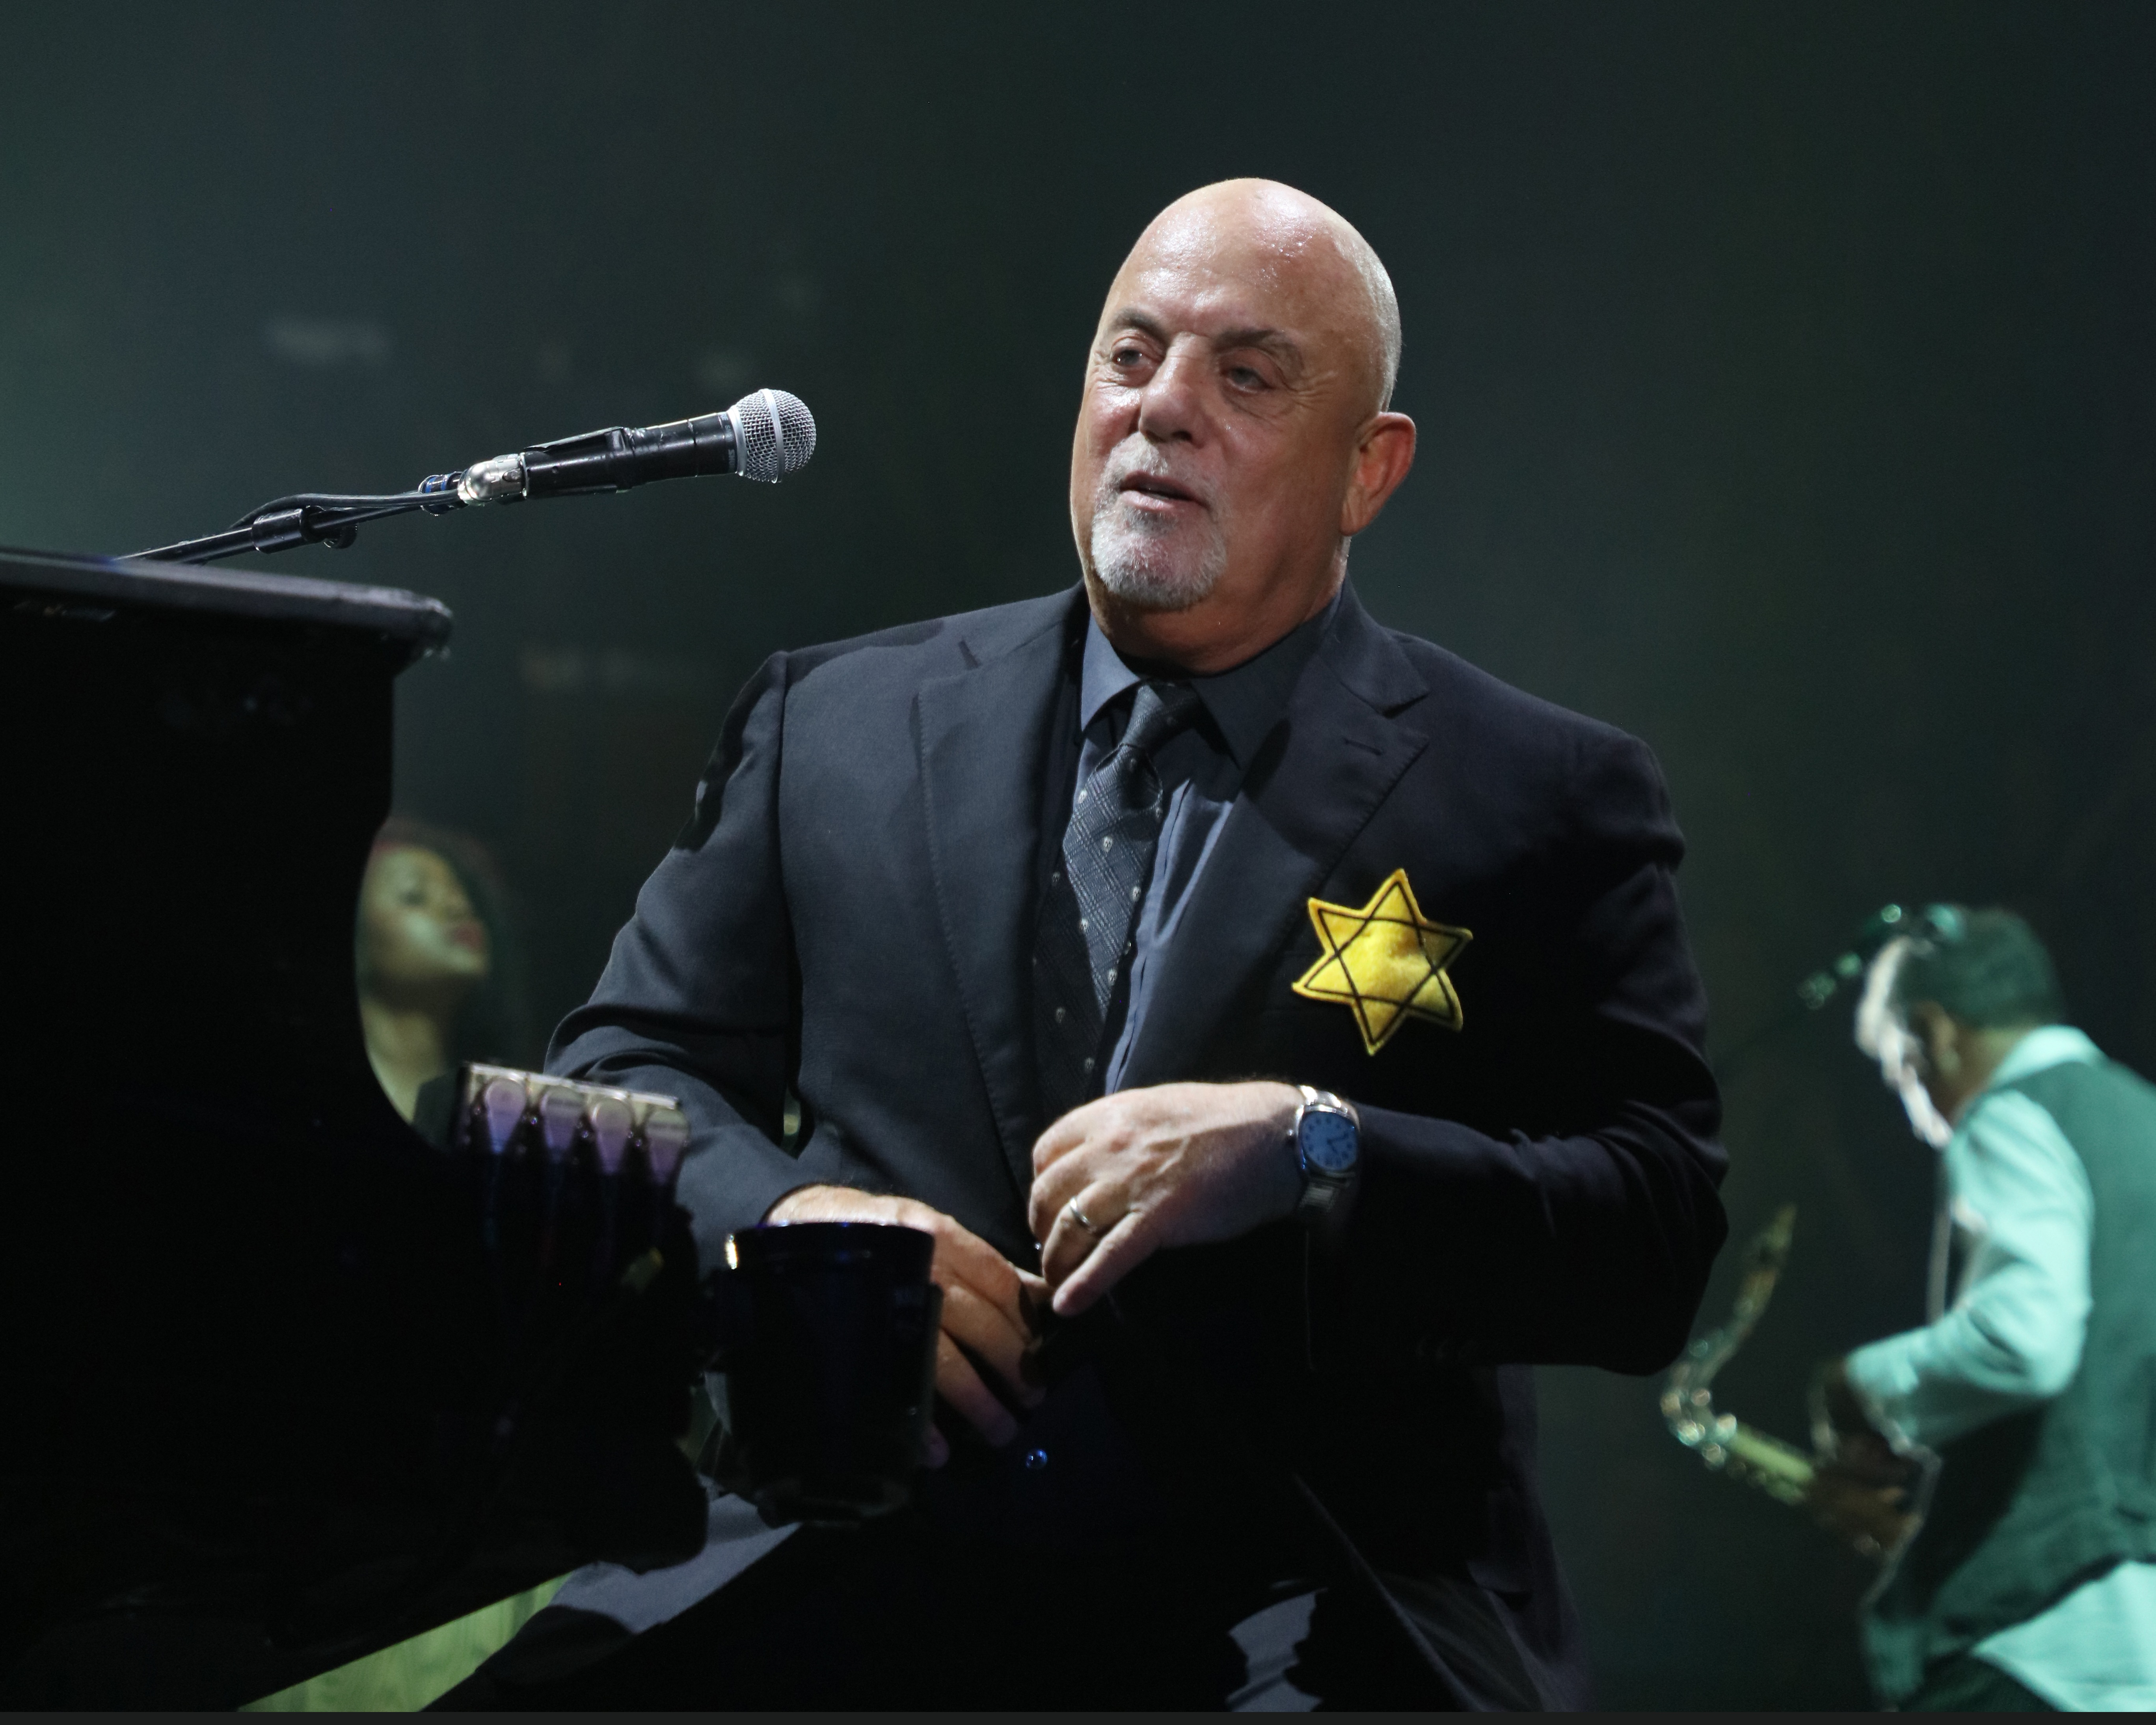 Billy Joel at New York City's Madison Square Garden on August 21st, 2017.